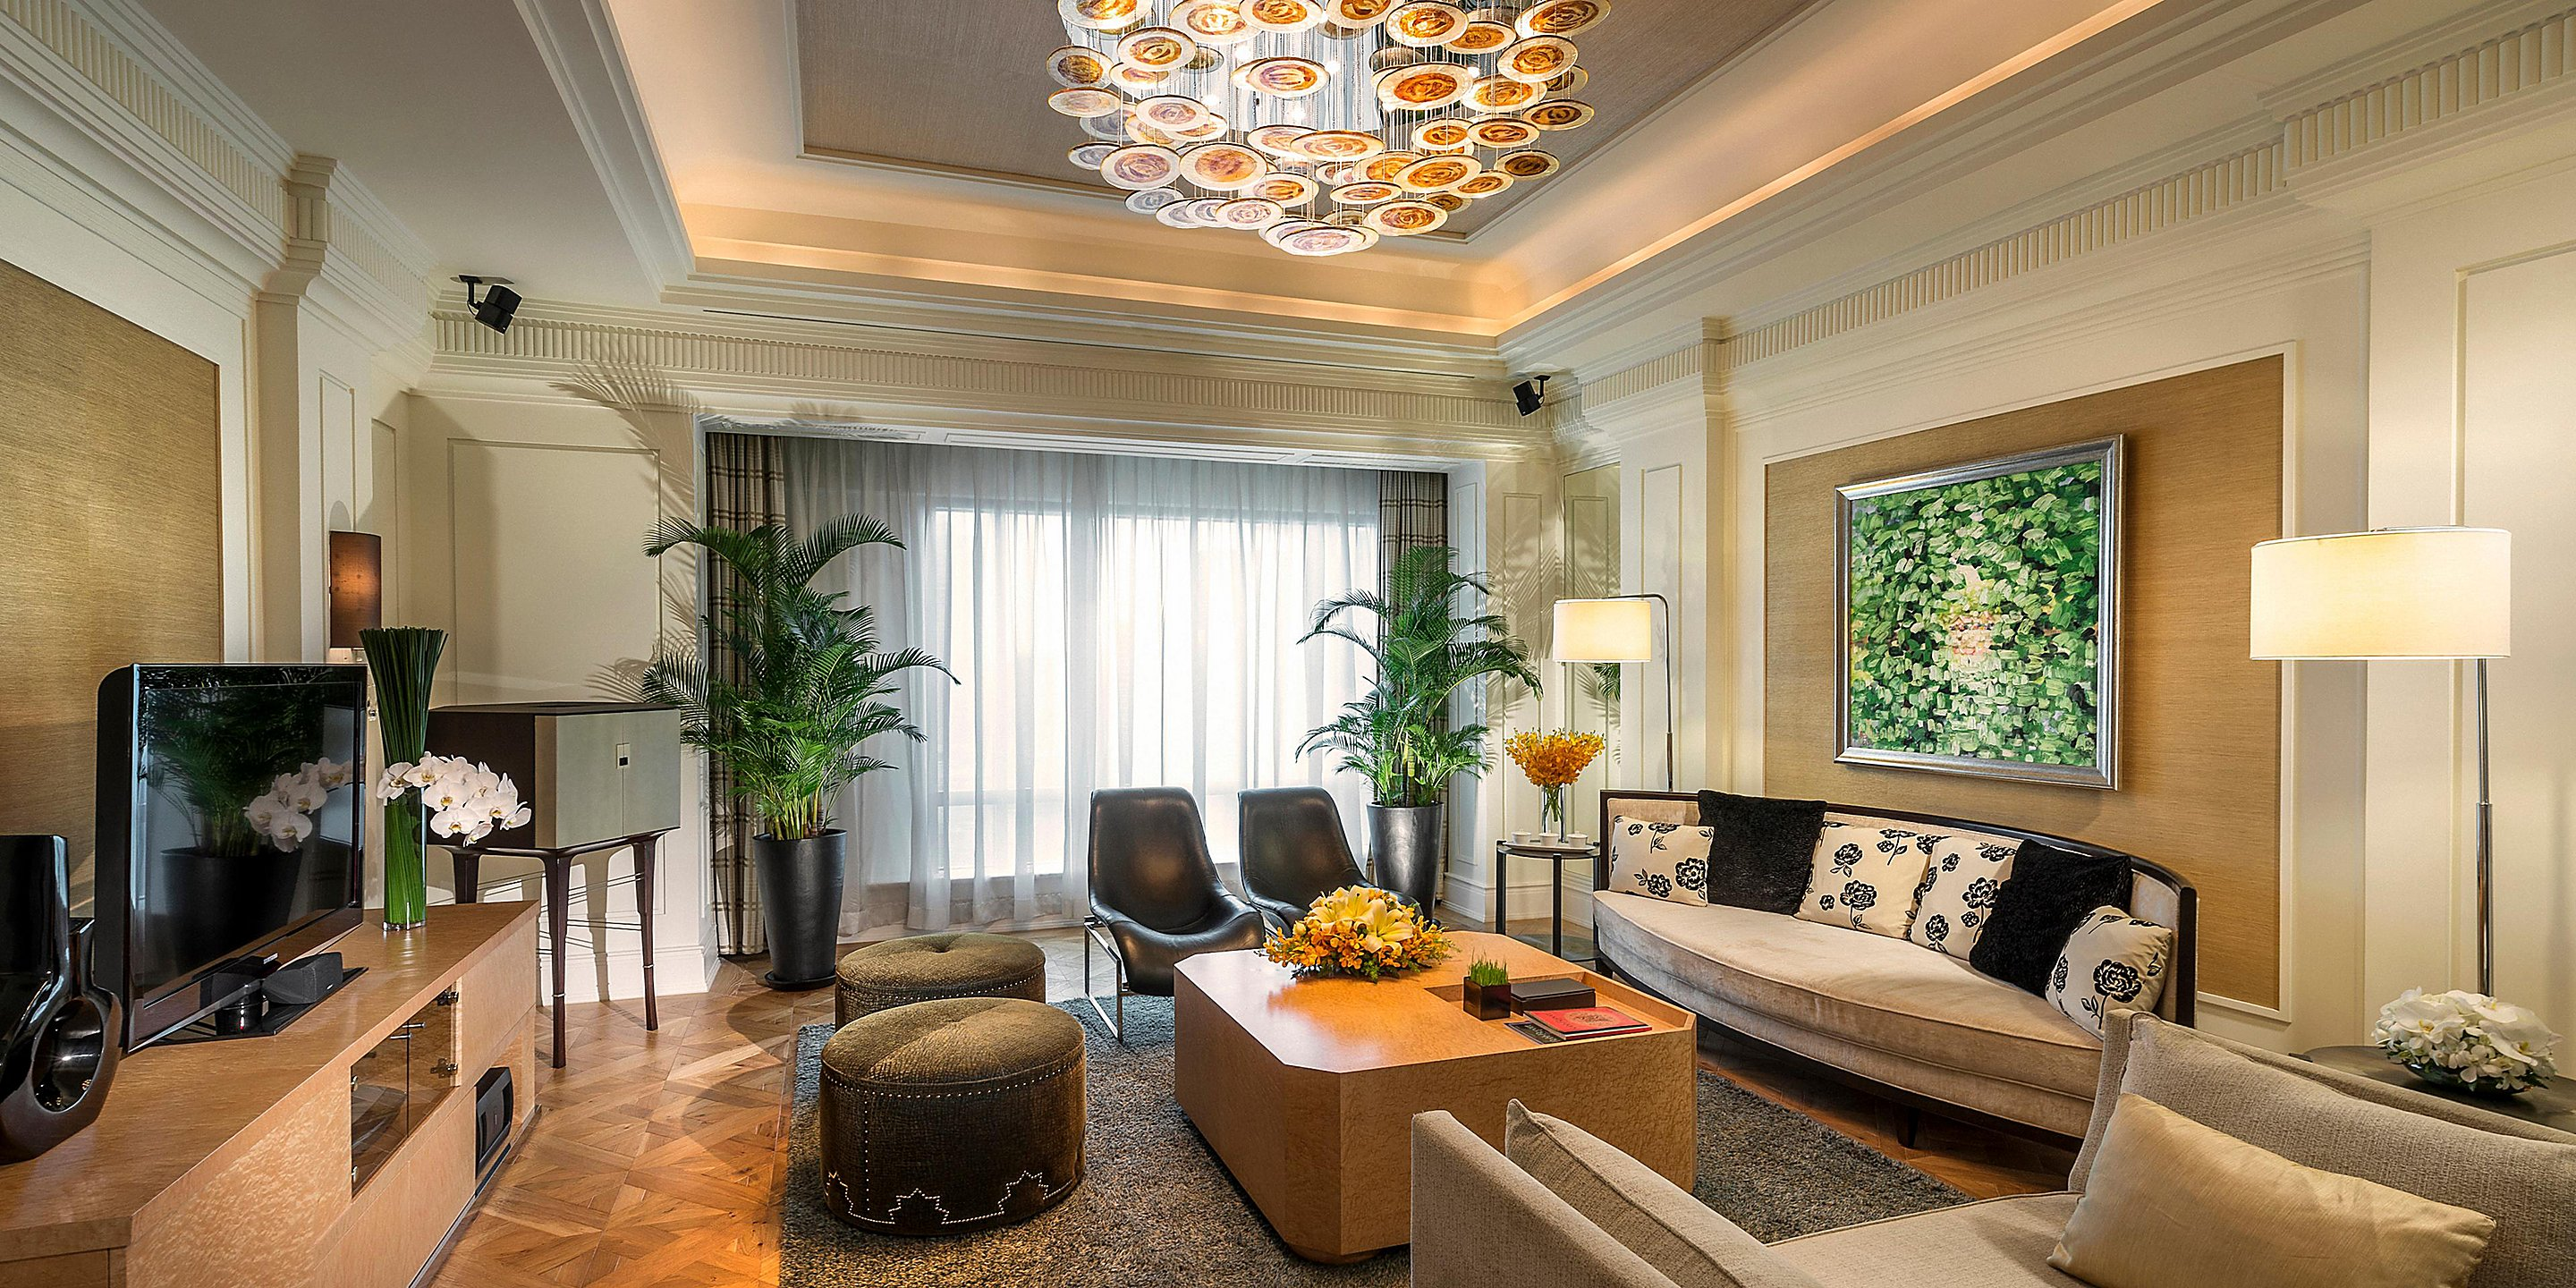 Convenient rooms in InterContinental Asiana Saigon